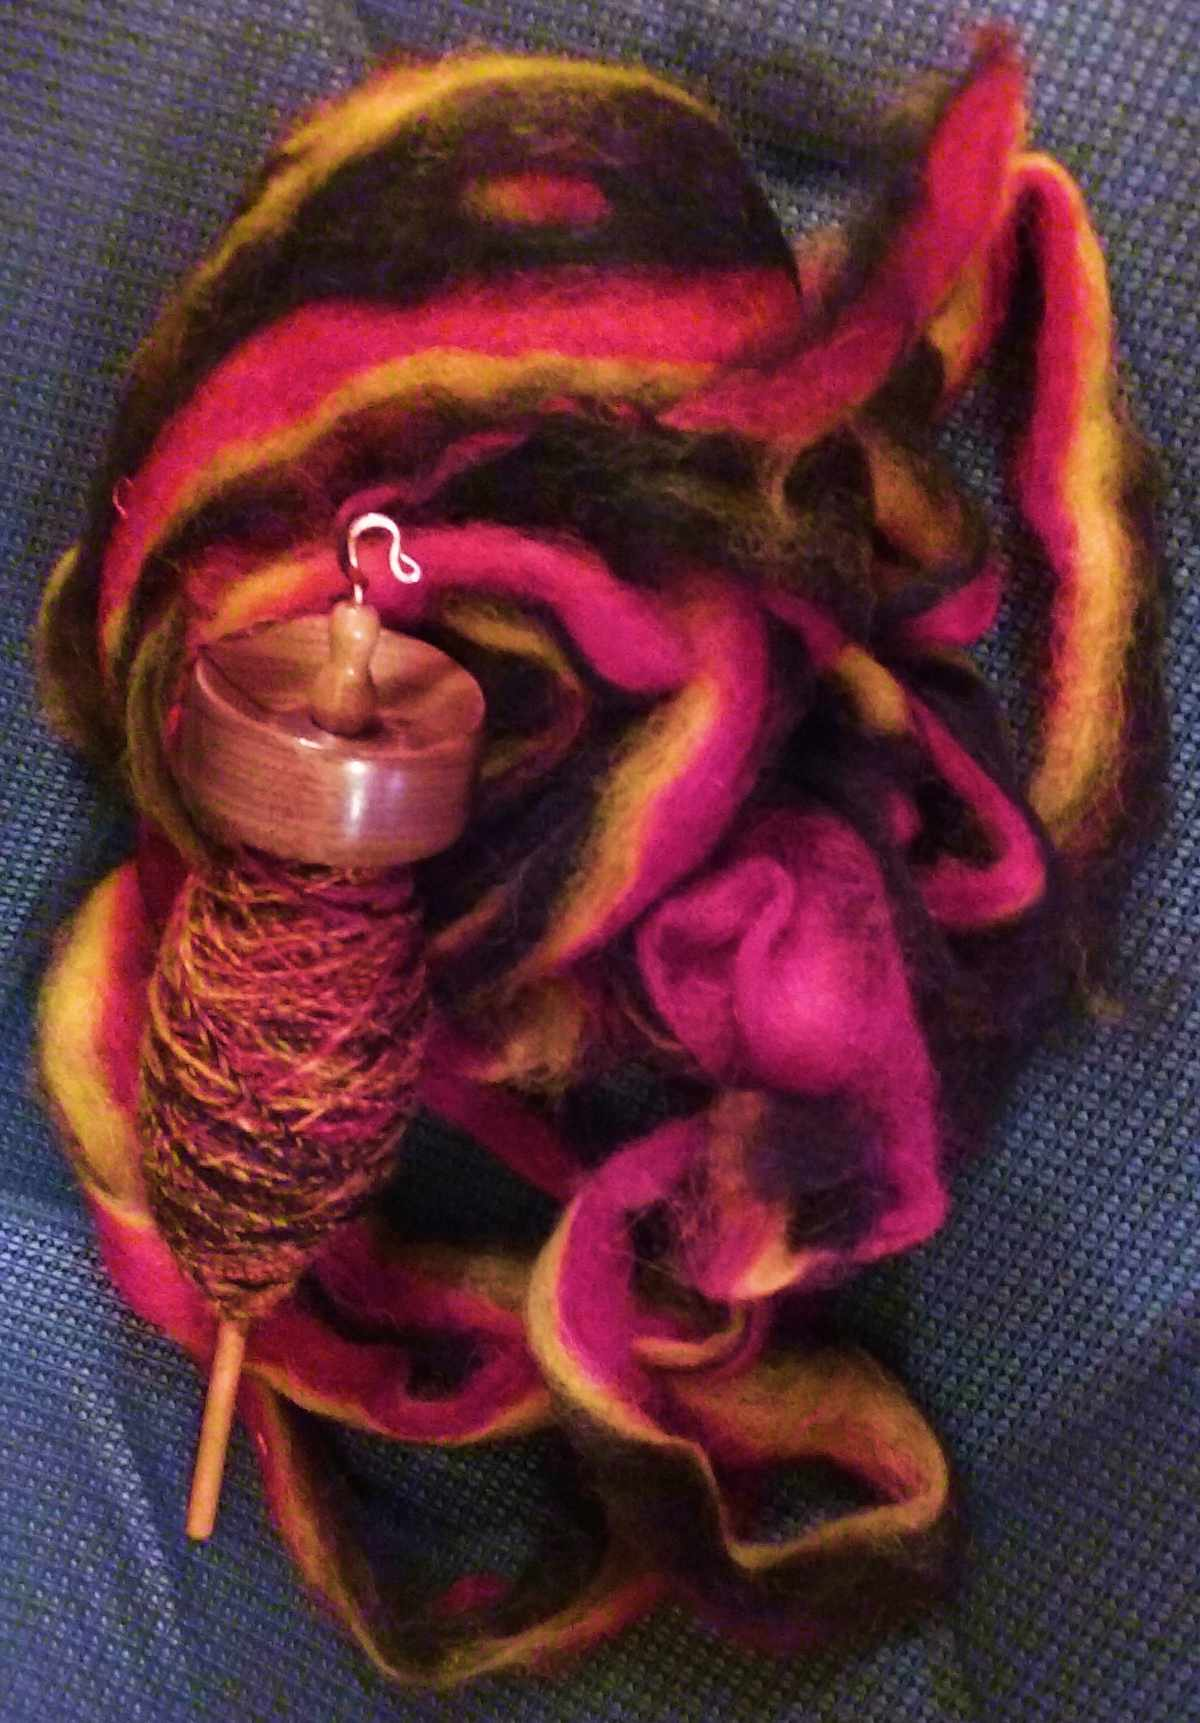 The roving that was spun for this tutorial along with the high whorl suspended spindle used for spinning one single of what will be this two ply.  Wool and alpaca fiber blend in the US spindle made in Virginia by Cynthia D. Haney of Cynthia Wood Spinner.